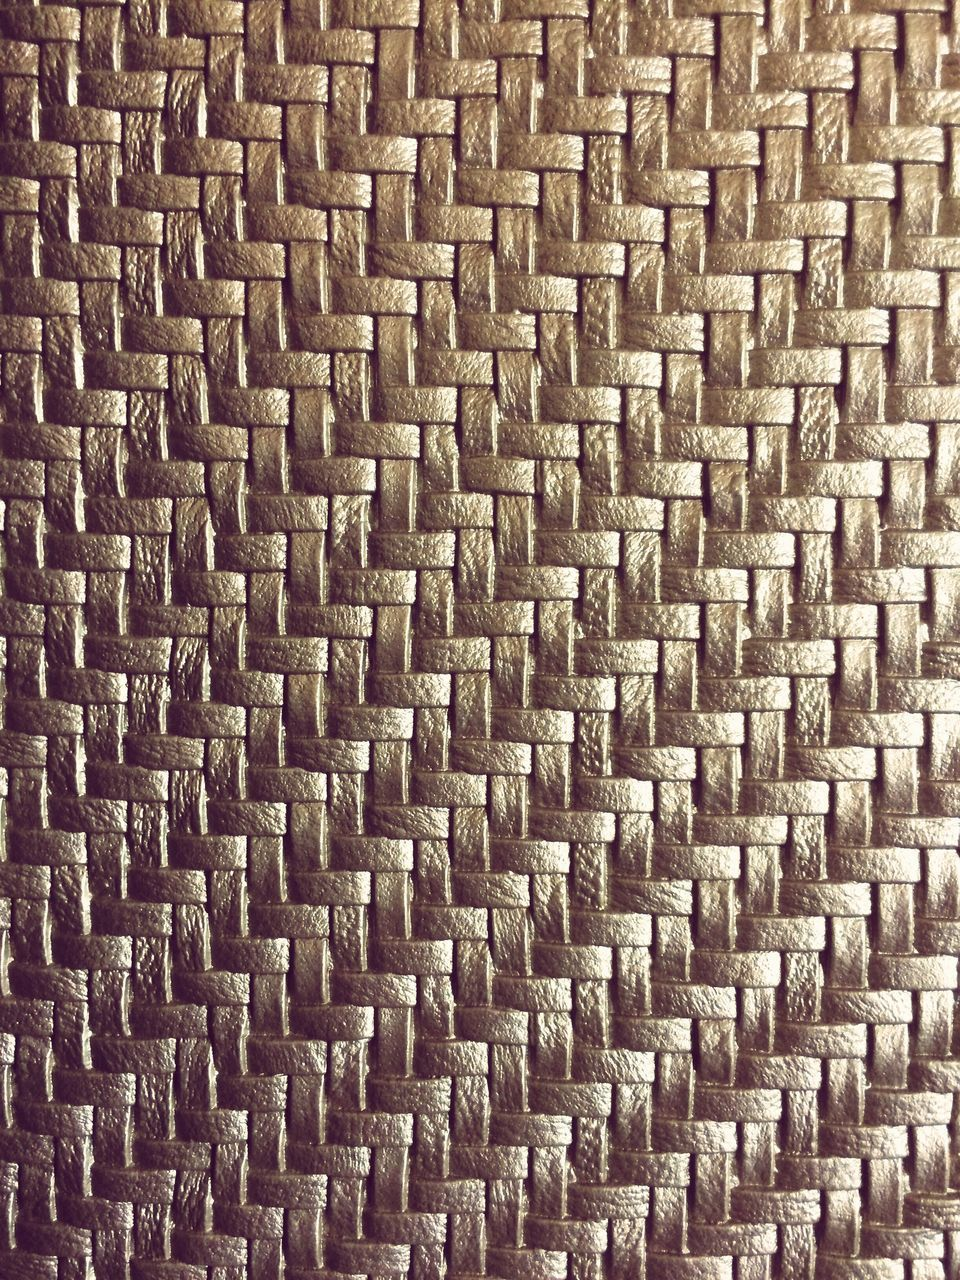 full frame, pattern, woven, backgrounds, textured, repetition, close-up, indoors, seamless pattern, textile, no people, crisscross, day